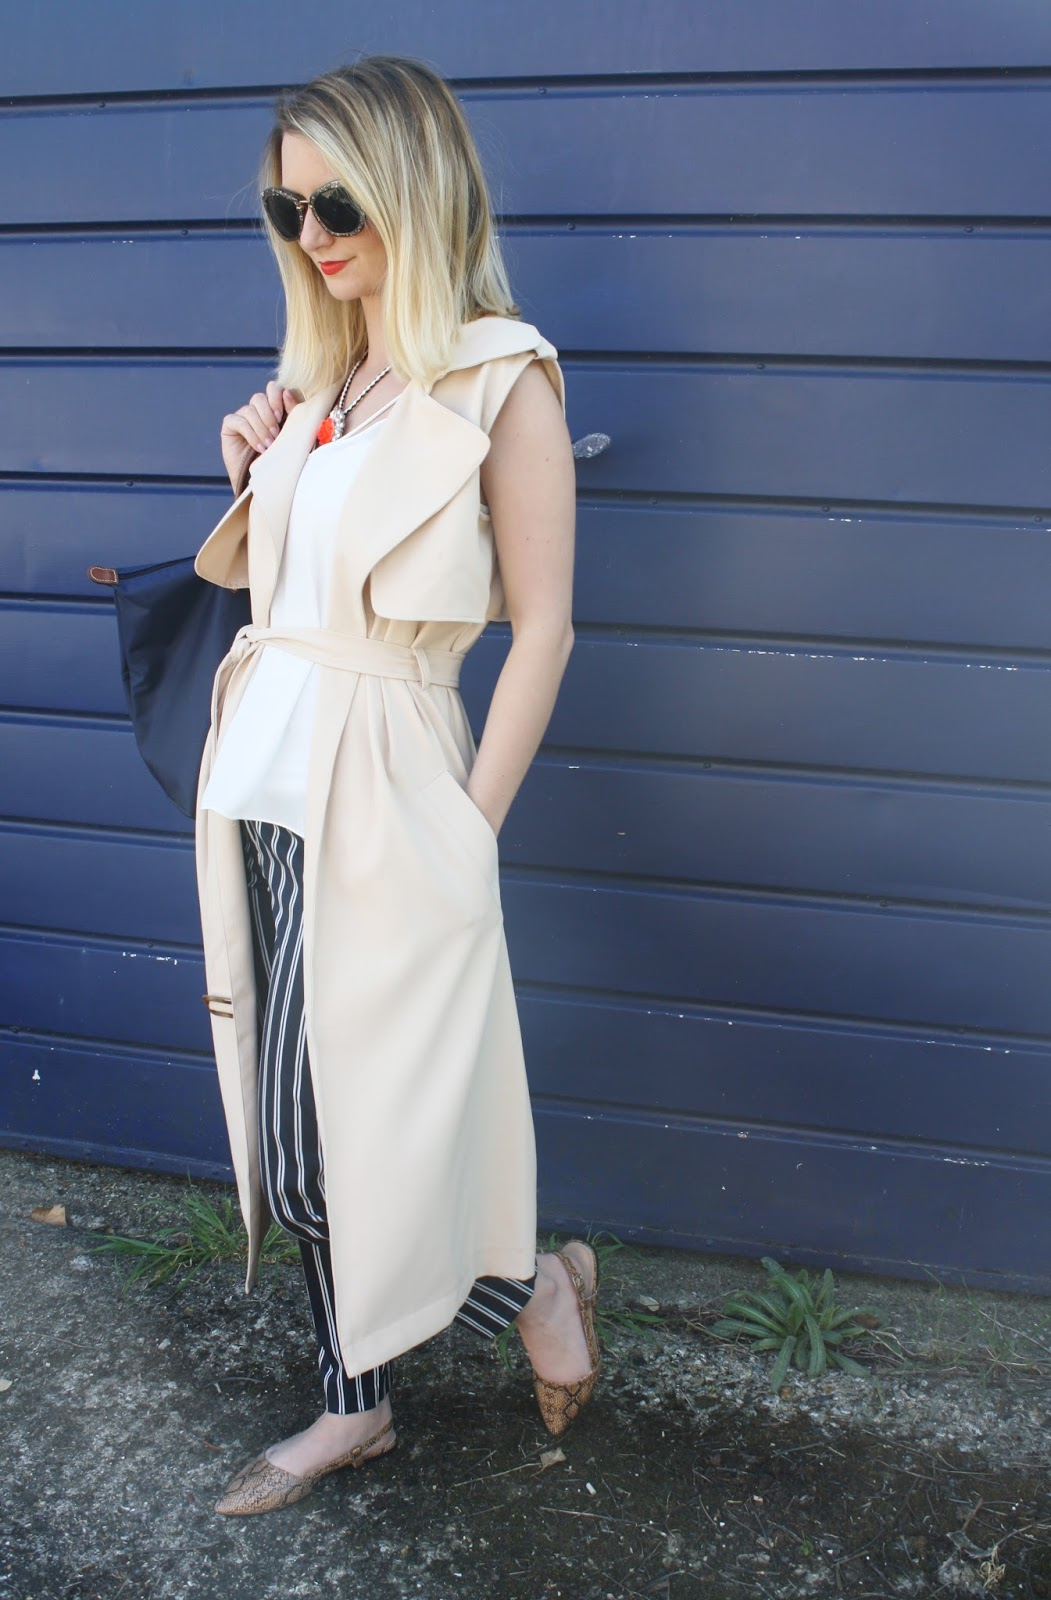 camel sleeveless trench styled with navy trousers and bag